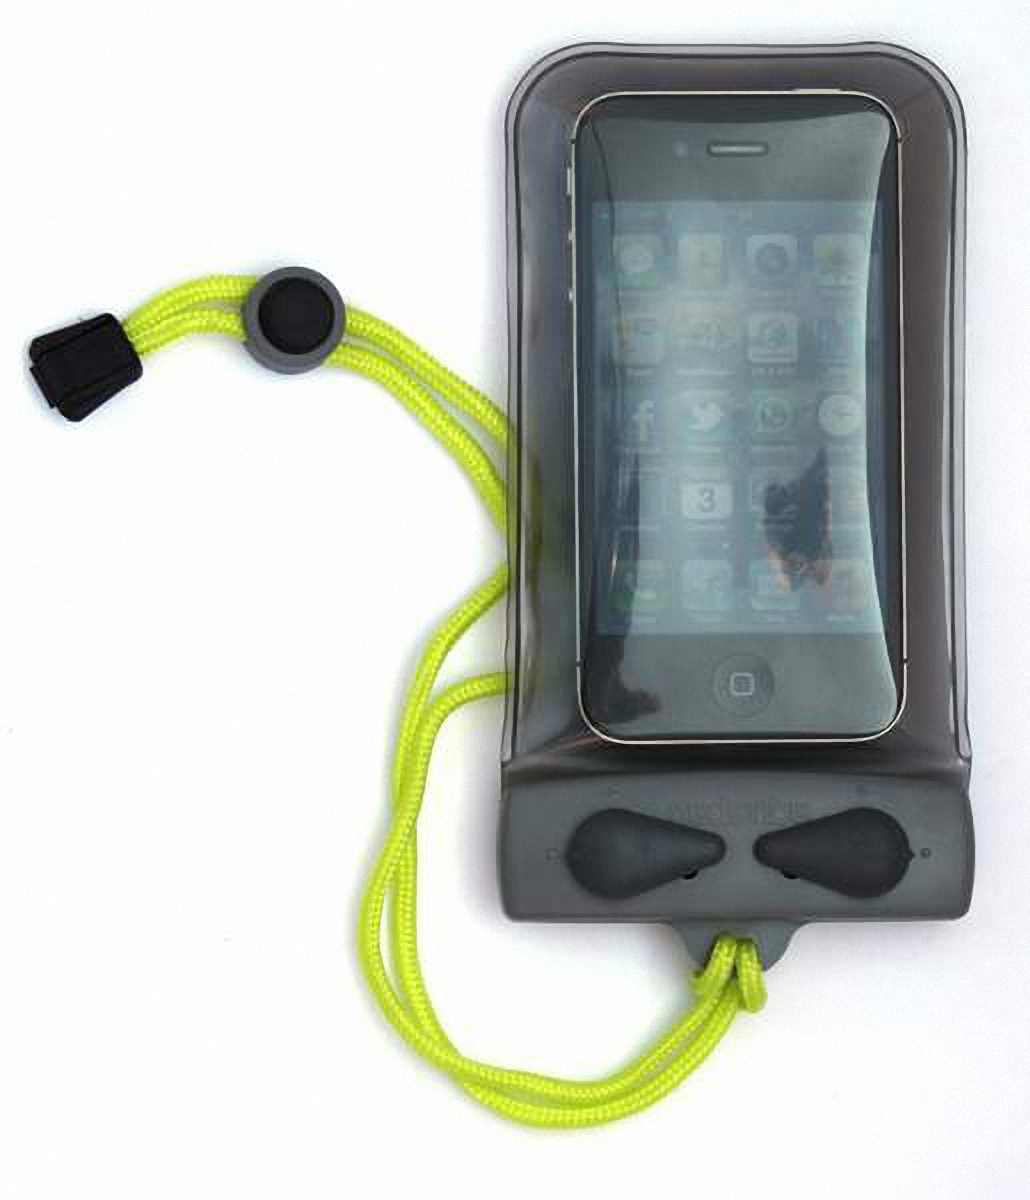 Aquapac 098 - Waterproof case for iPhone